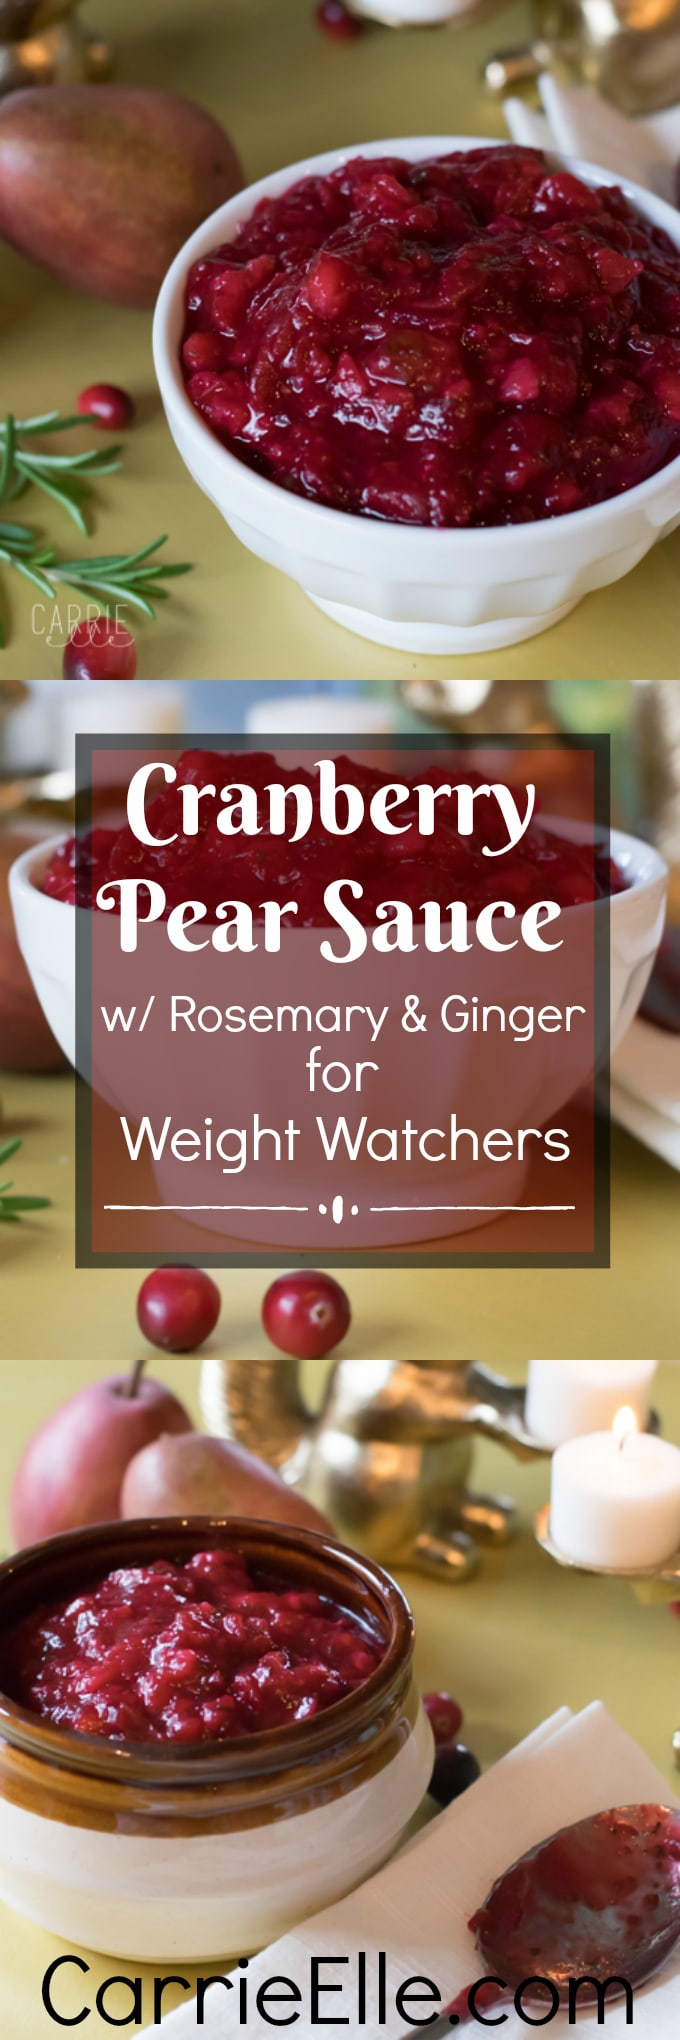 21 Day Fix Cranberry Pear Sauce with Rosemary and Ginger ...